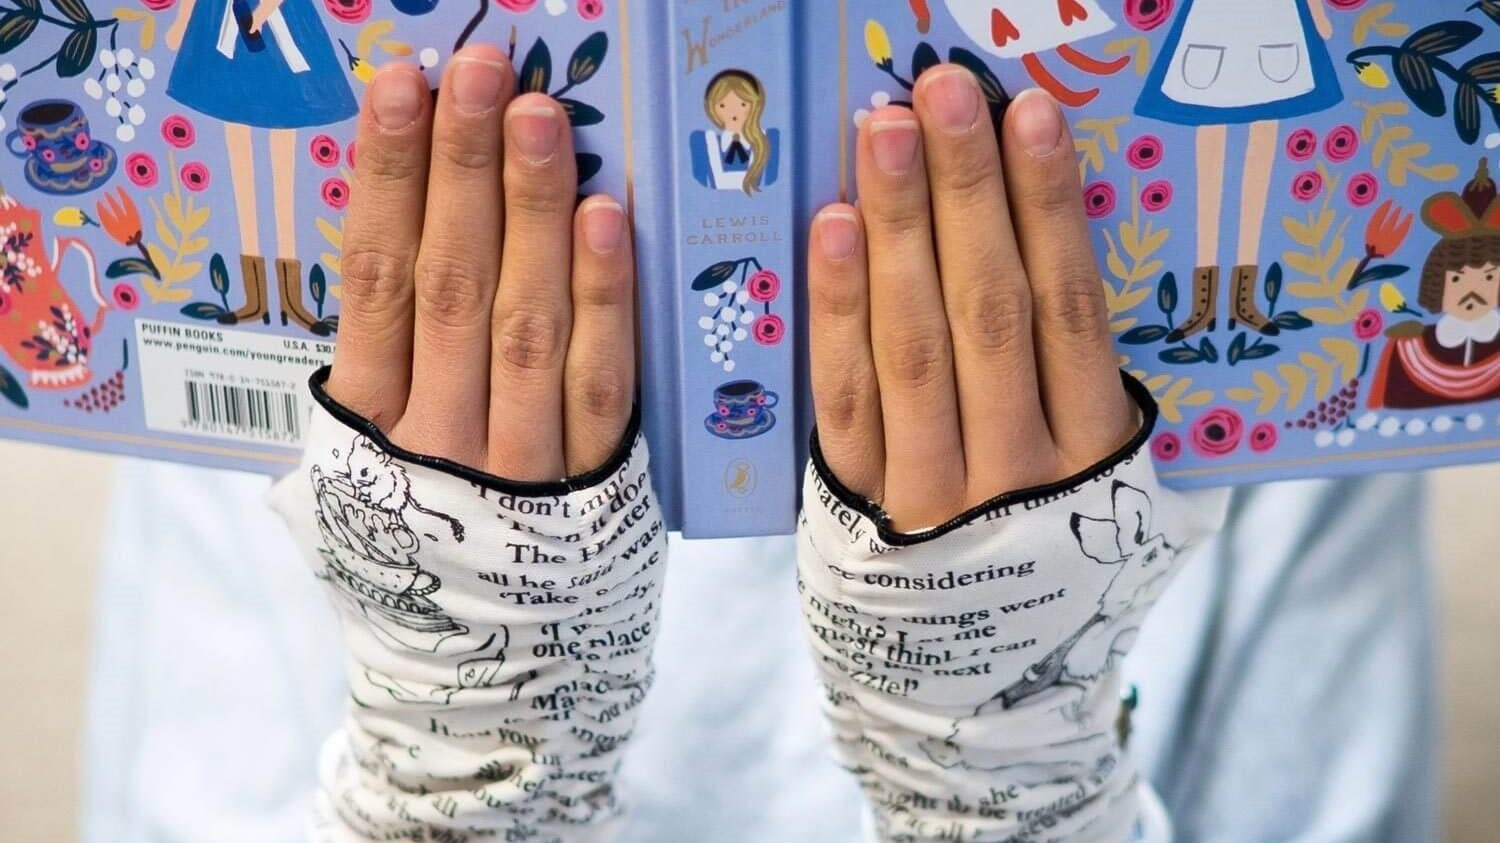 Someone wearing the 'Alice in Wonderland' fingerless gloves and holding a copy of the book.